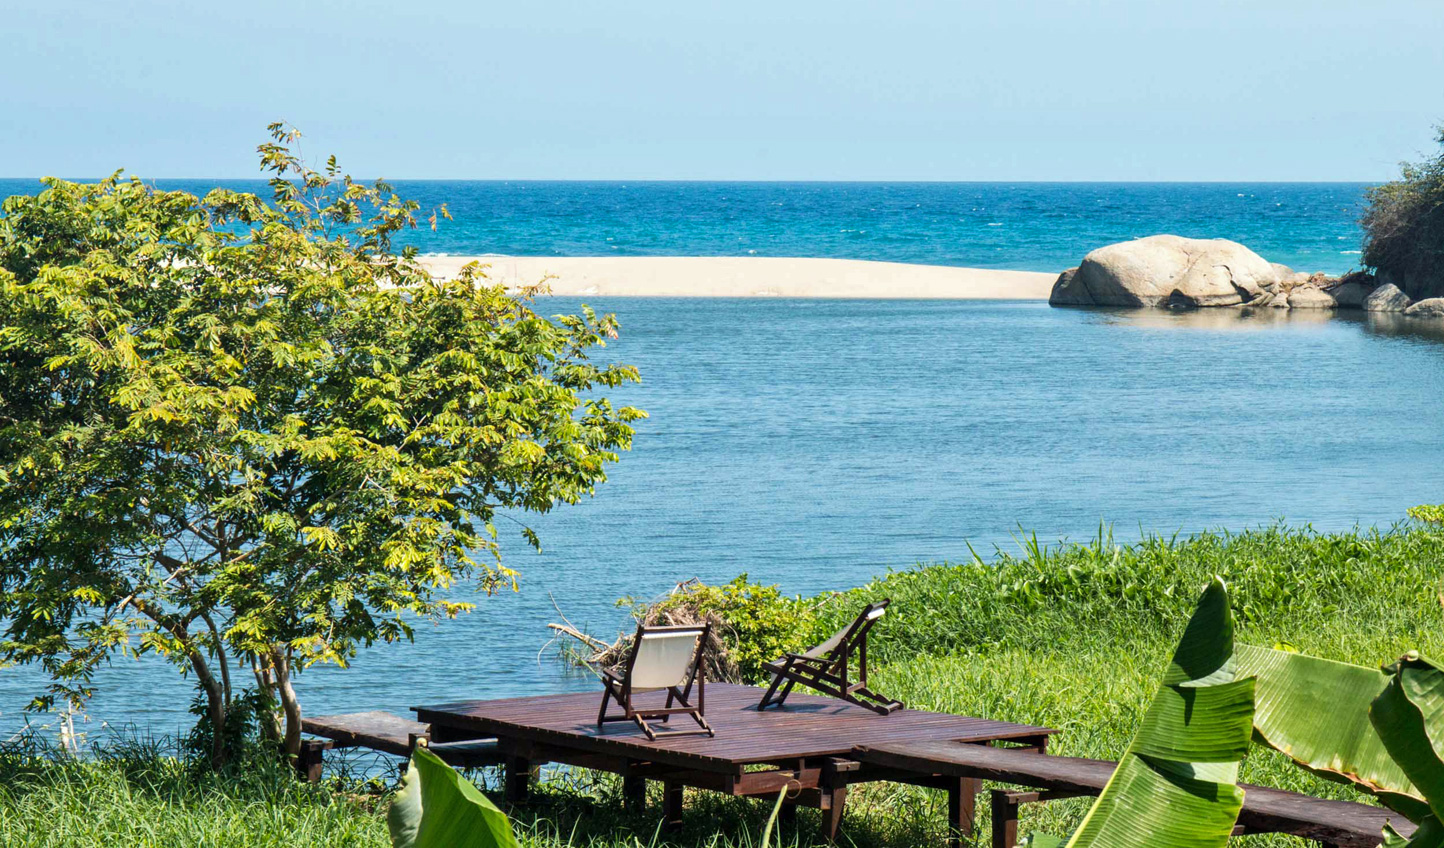 Relax in the peaceful surroundings of Tayrona